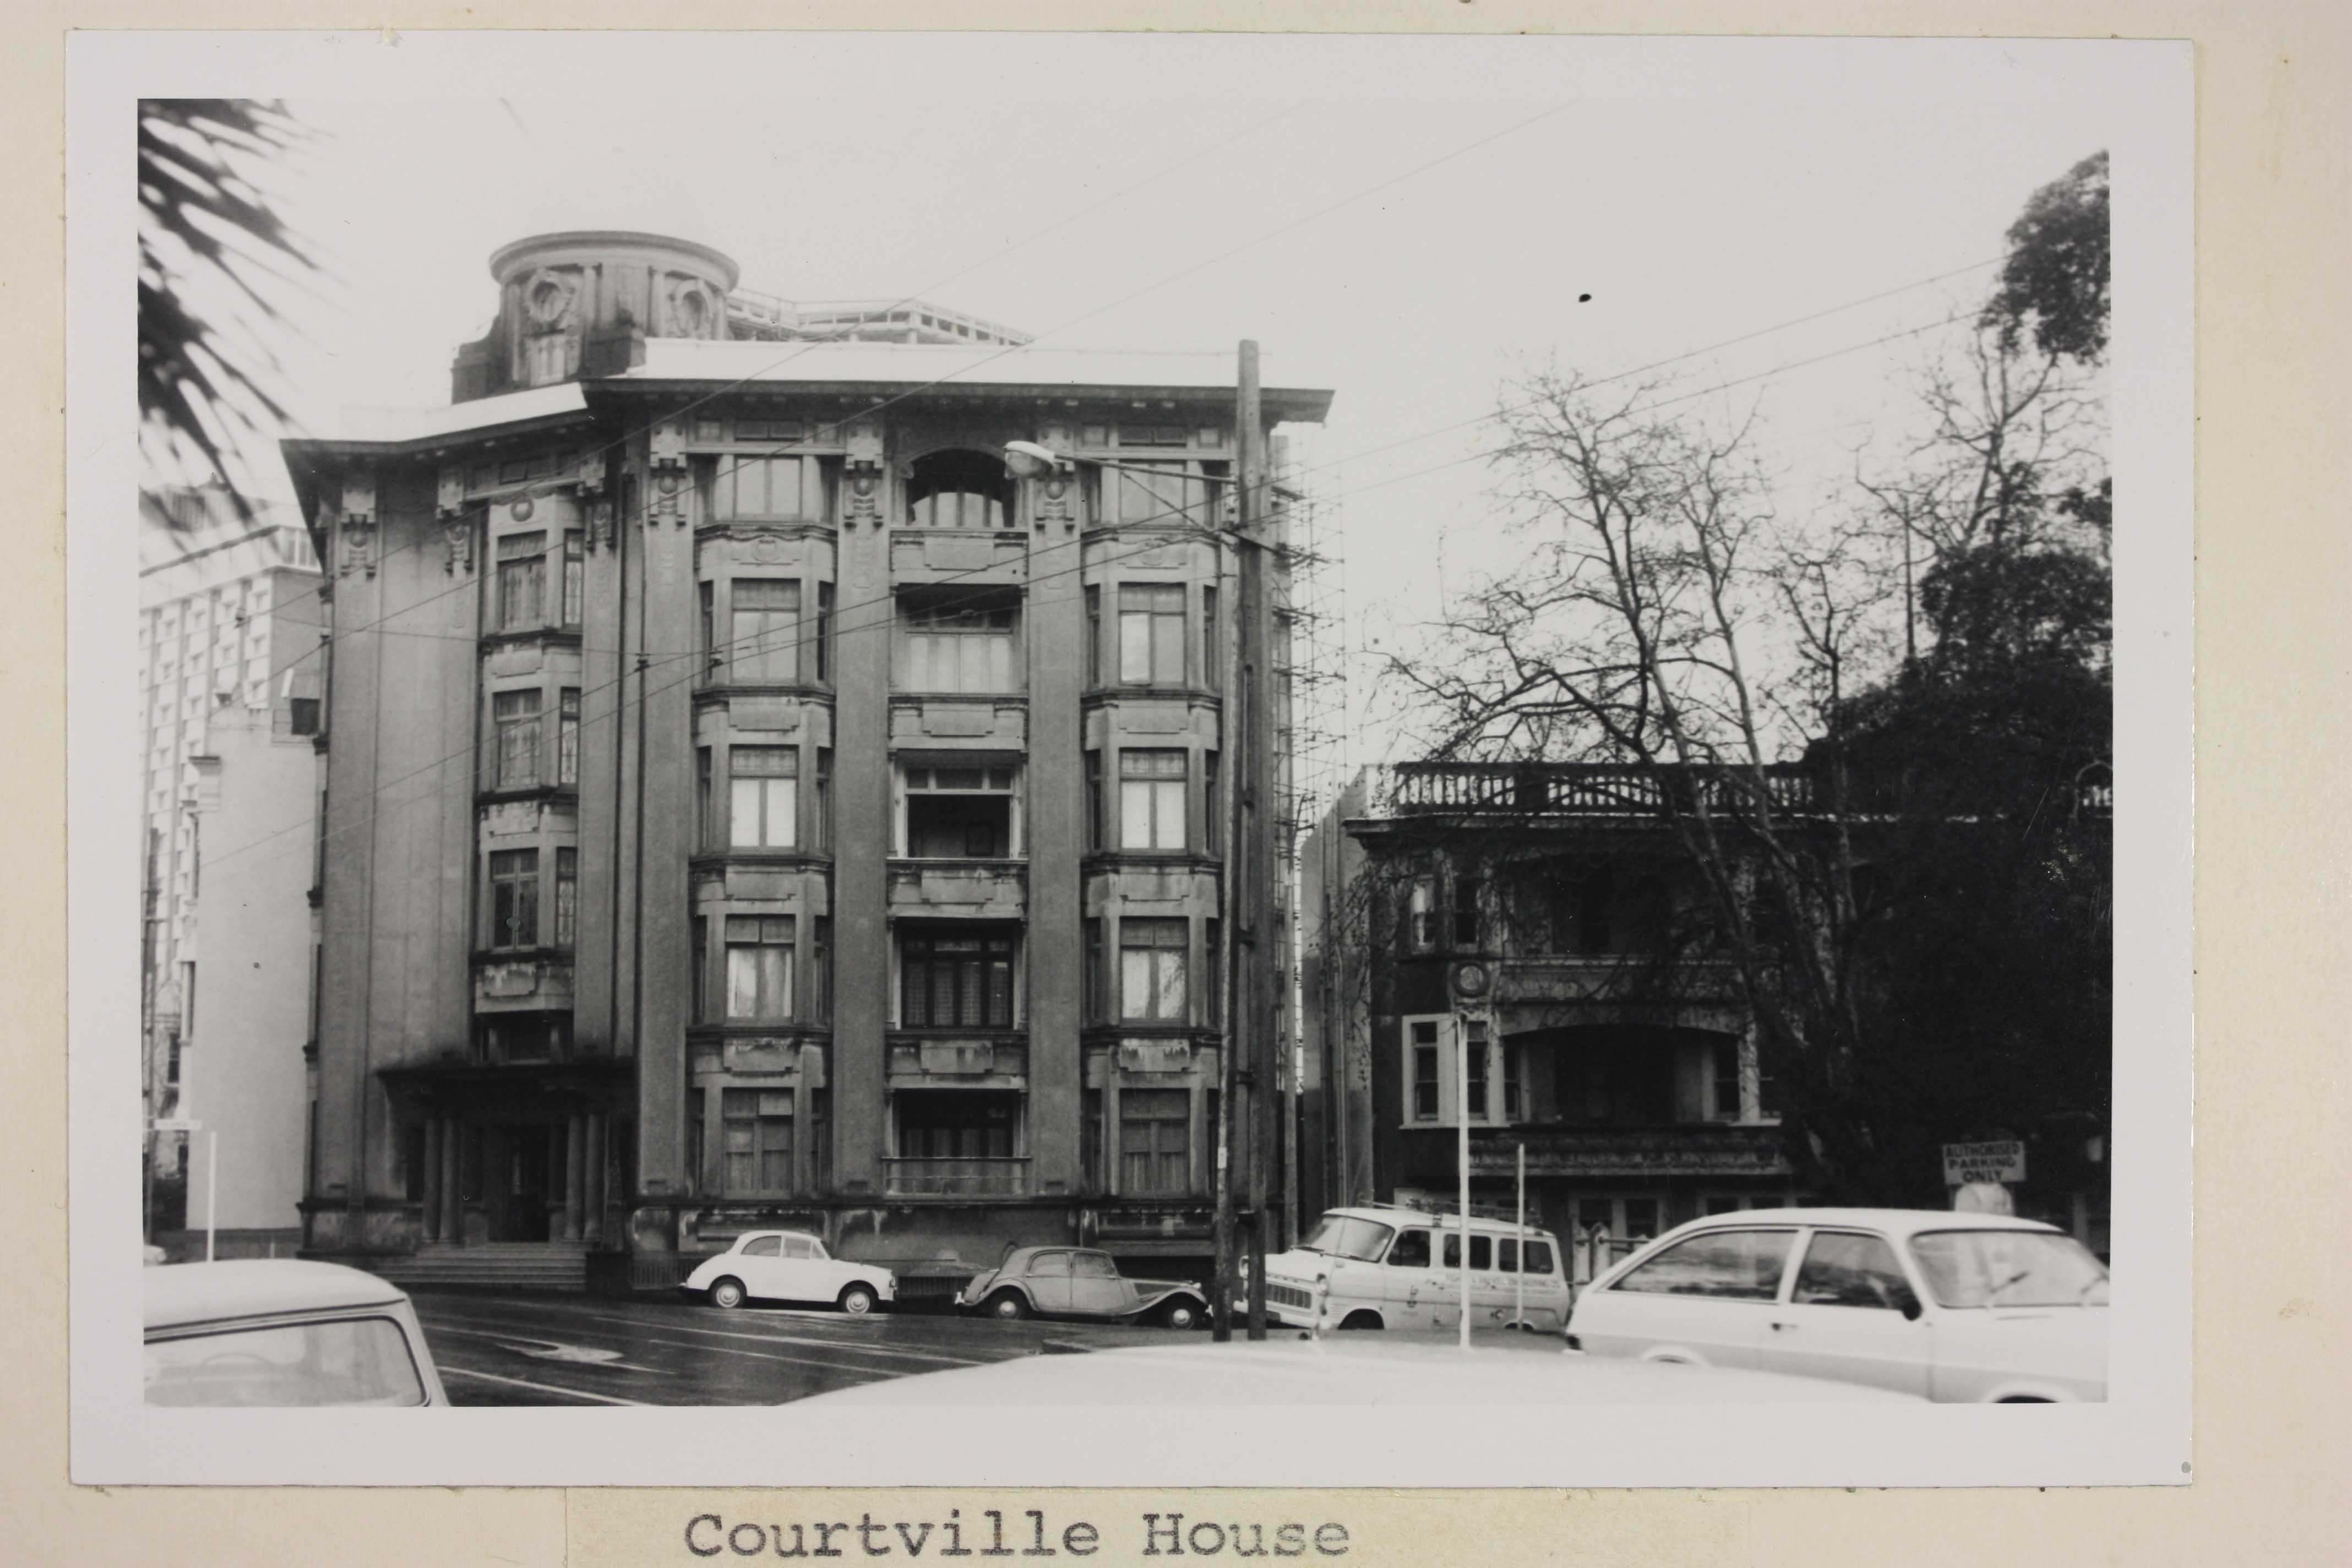 Black and white image of a large building from the street